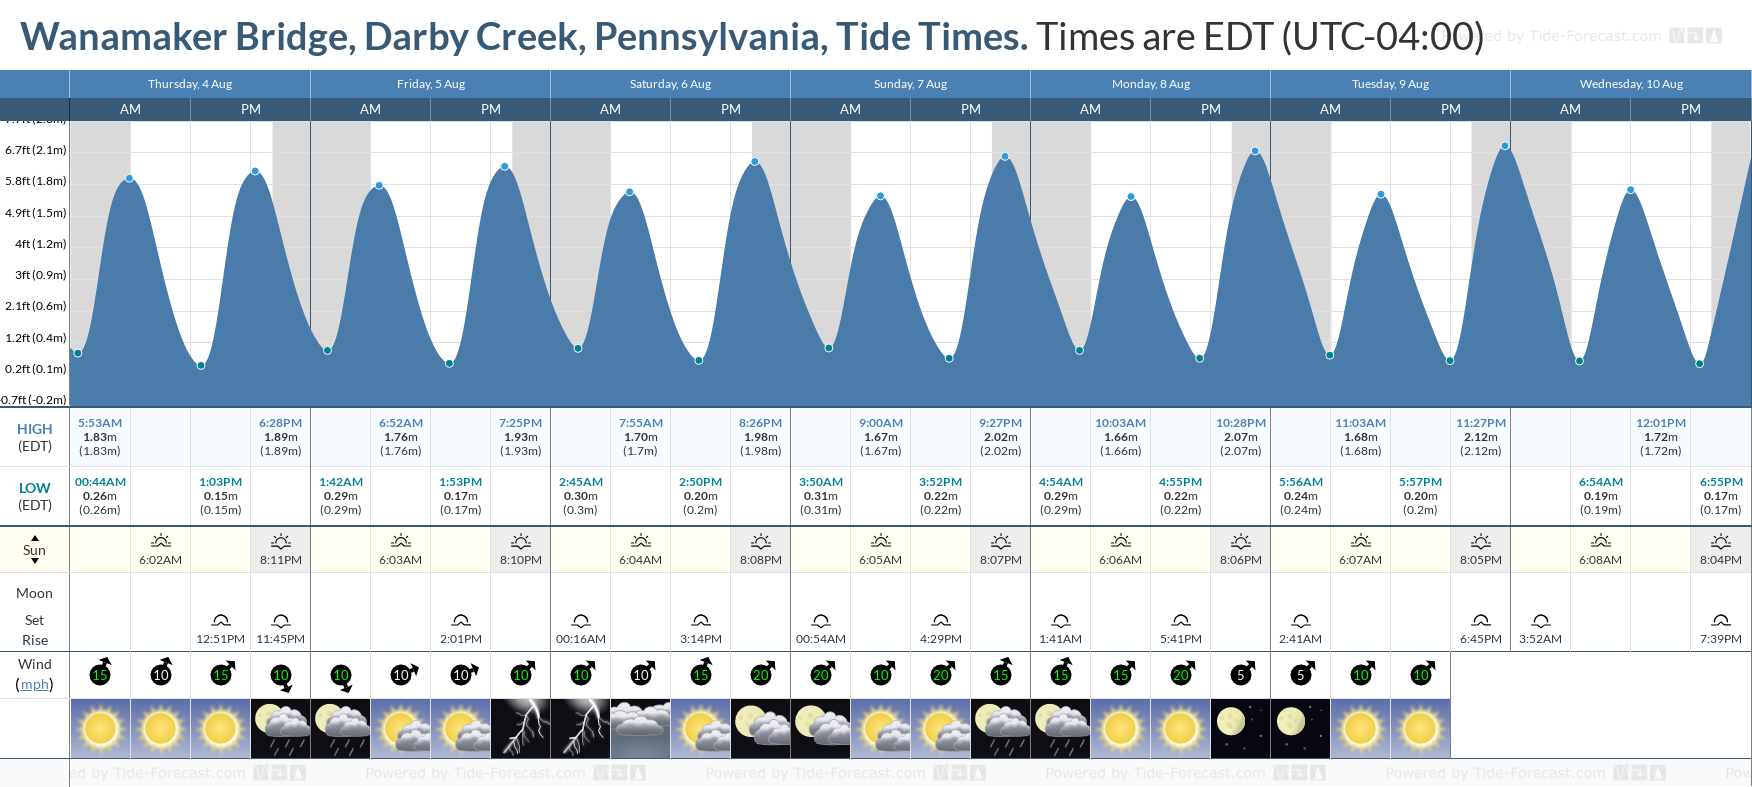 Wanamaker Bridge, Darby Creek, Pennsylvania Tide Chart including high and low tide tide times for the next 7 days